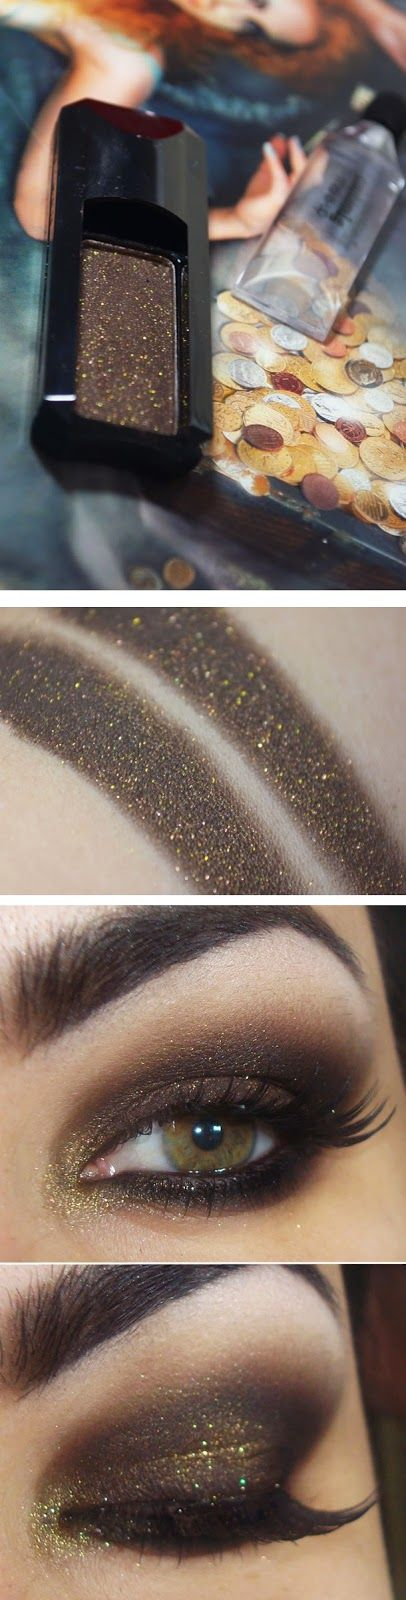 Brown Shade With Wonderful Brightness Makeup Tutorials / LoLus Makeup Fashion